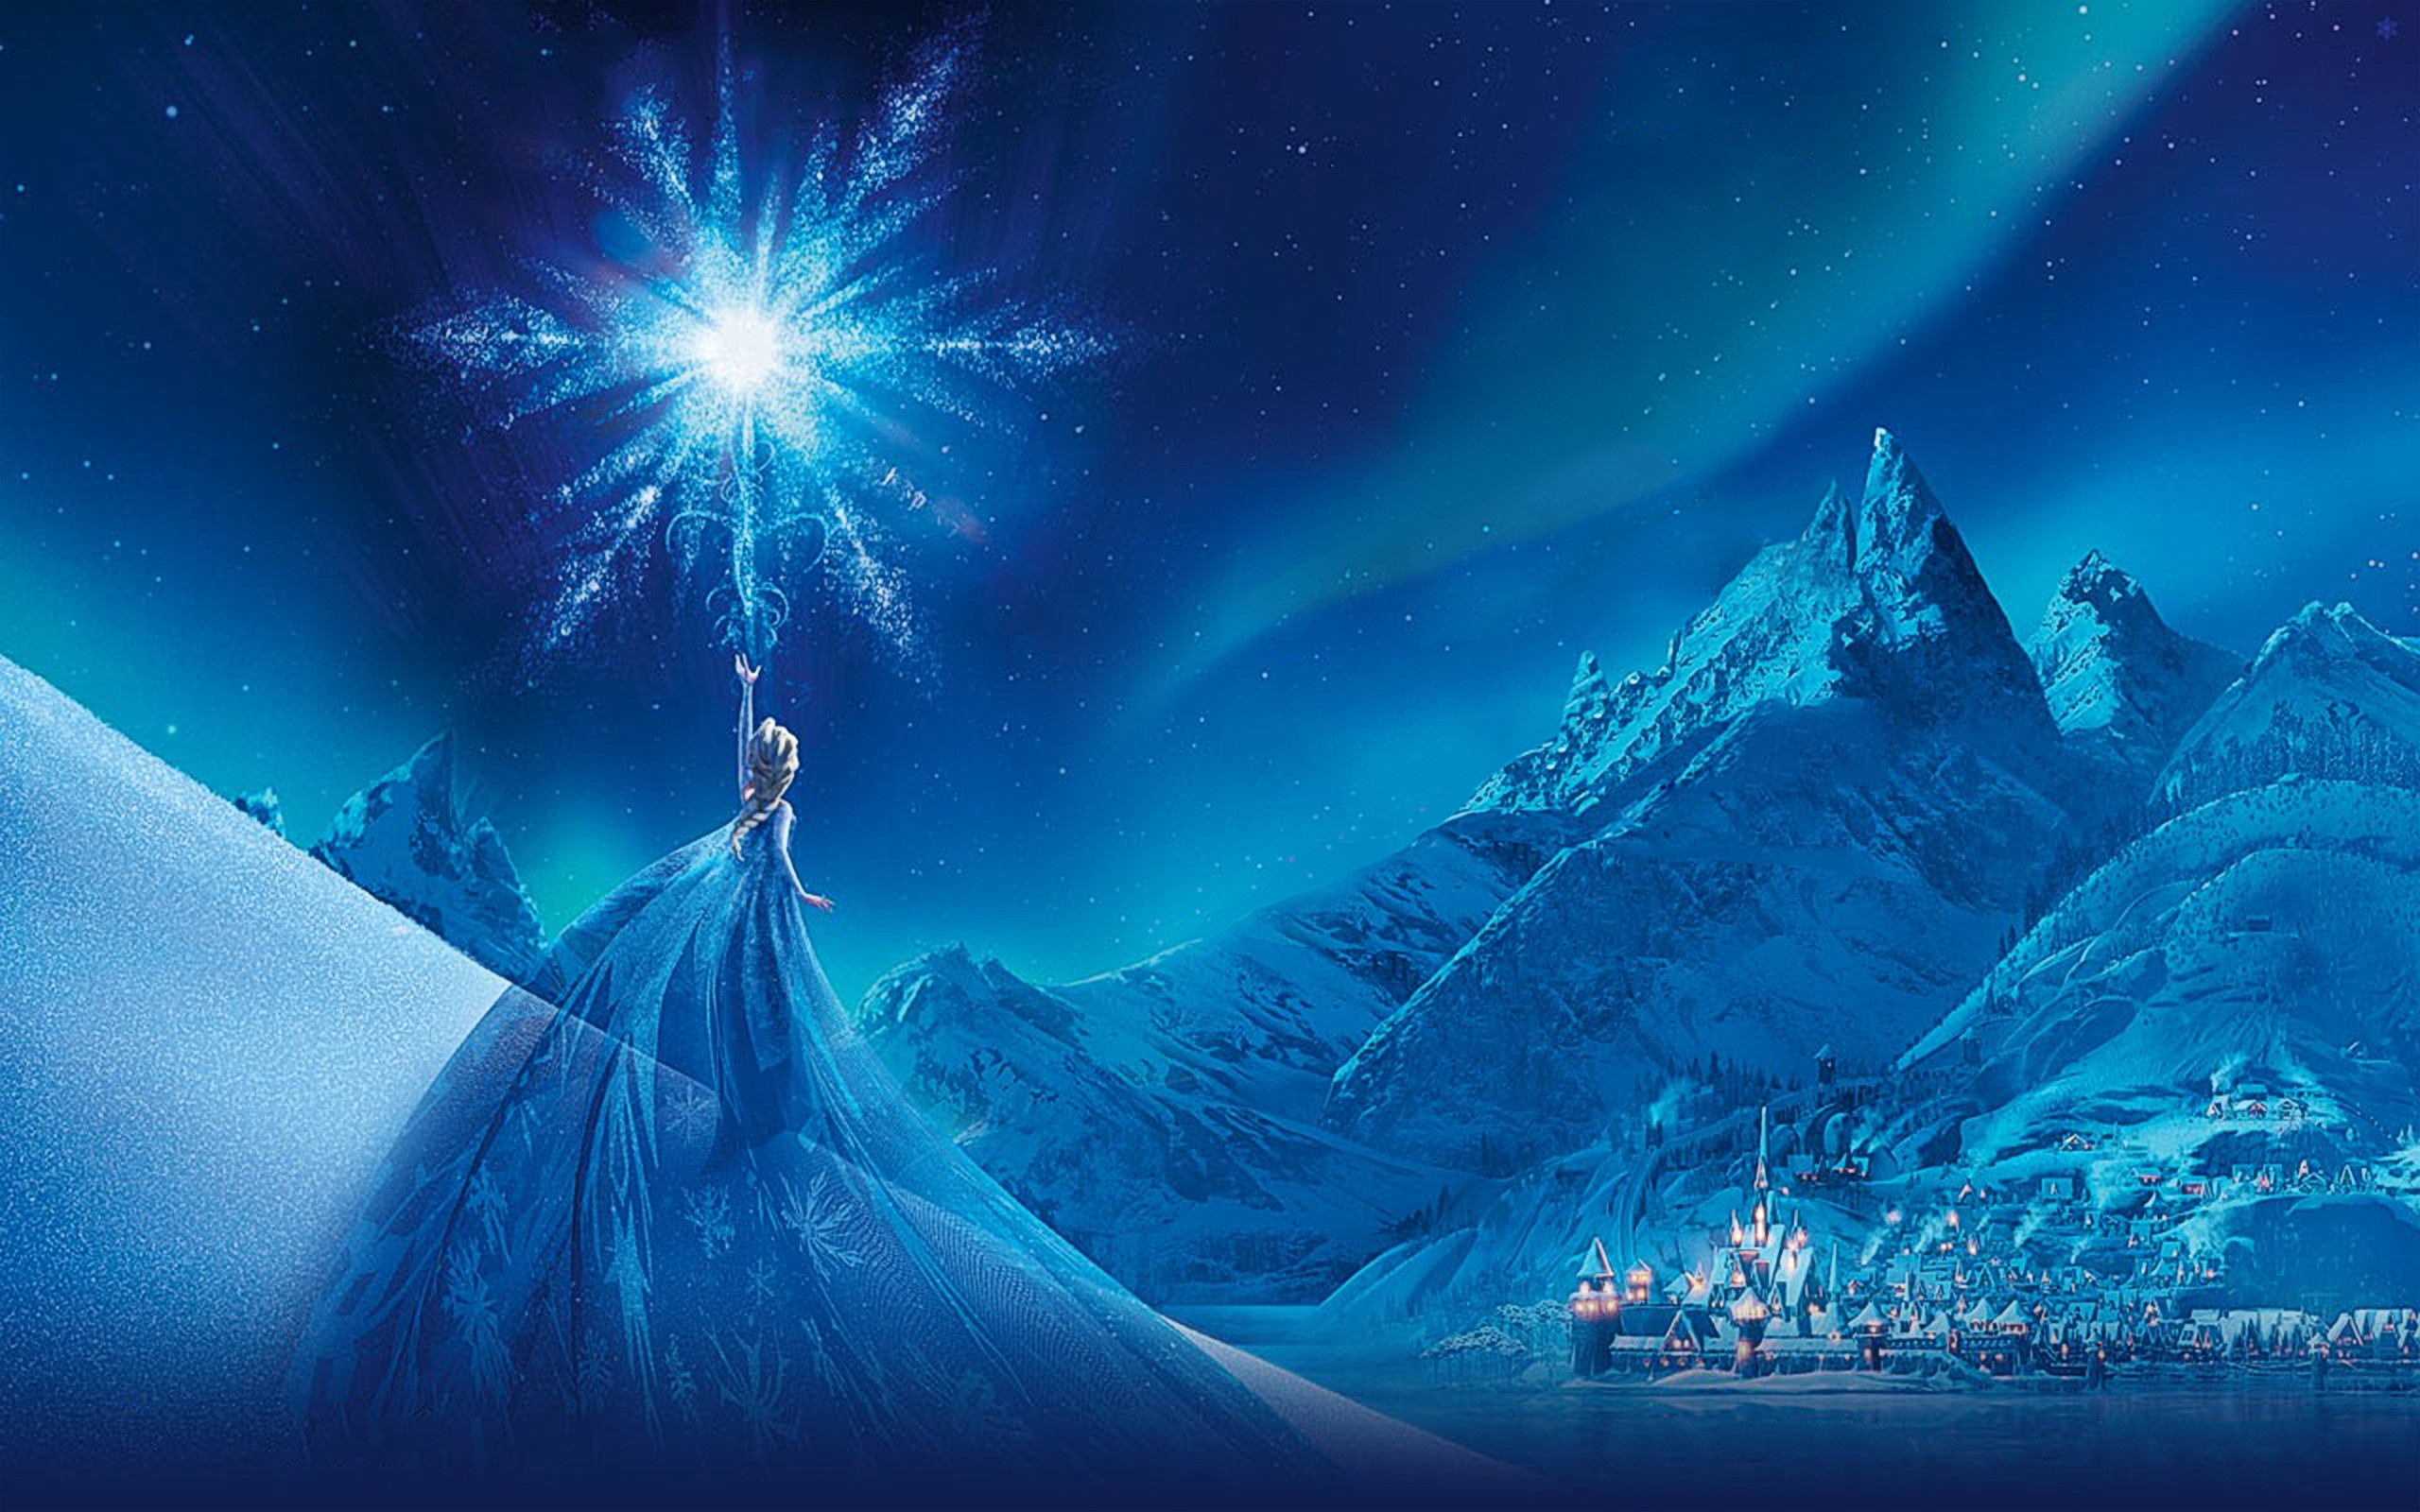 Frozen wallpapers 2560x1600